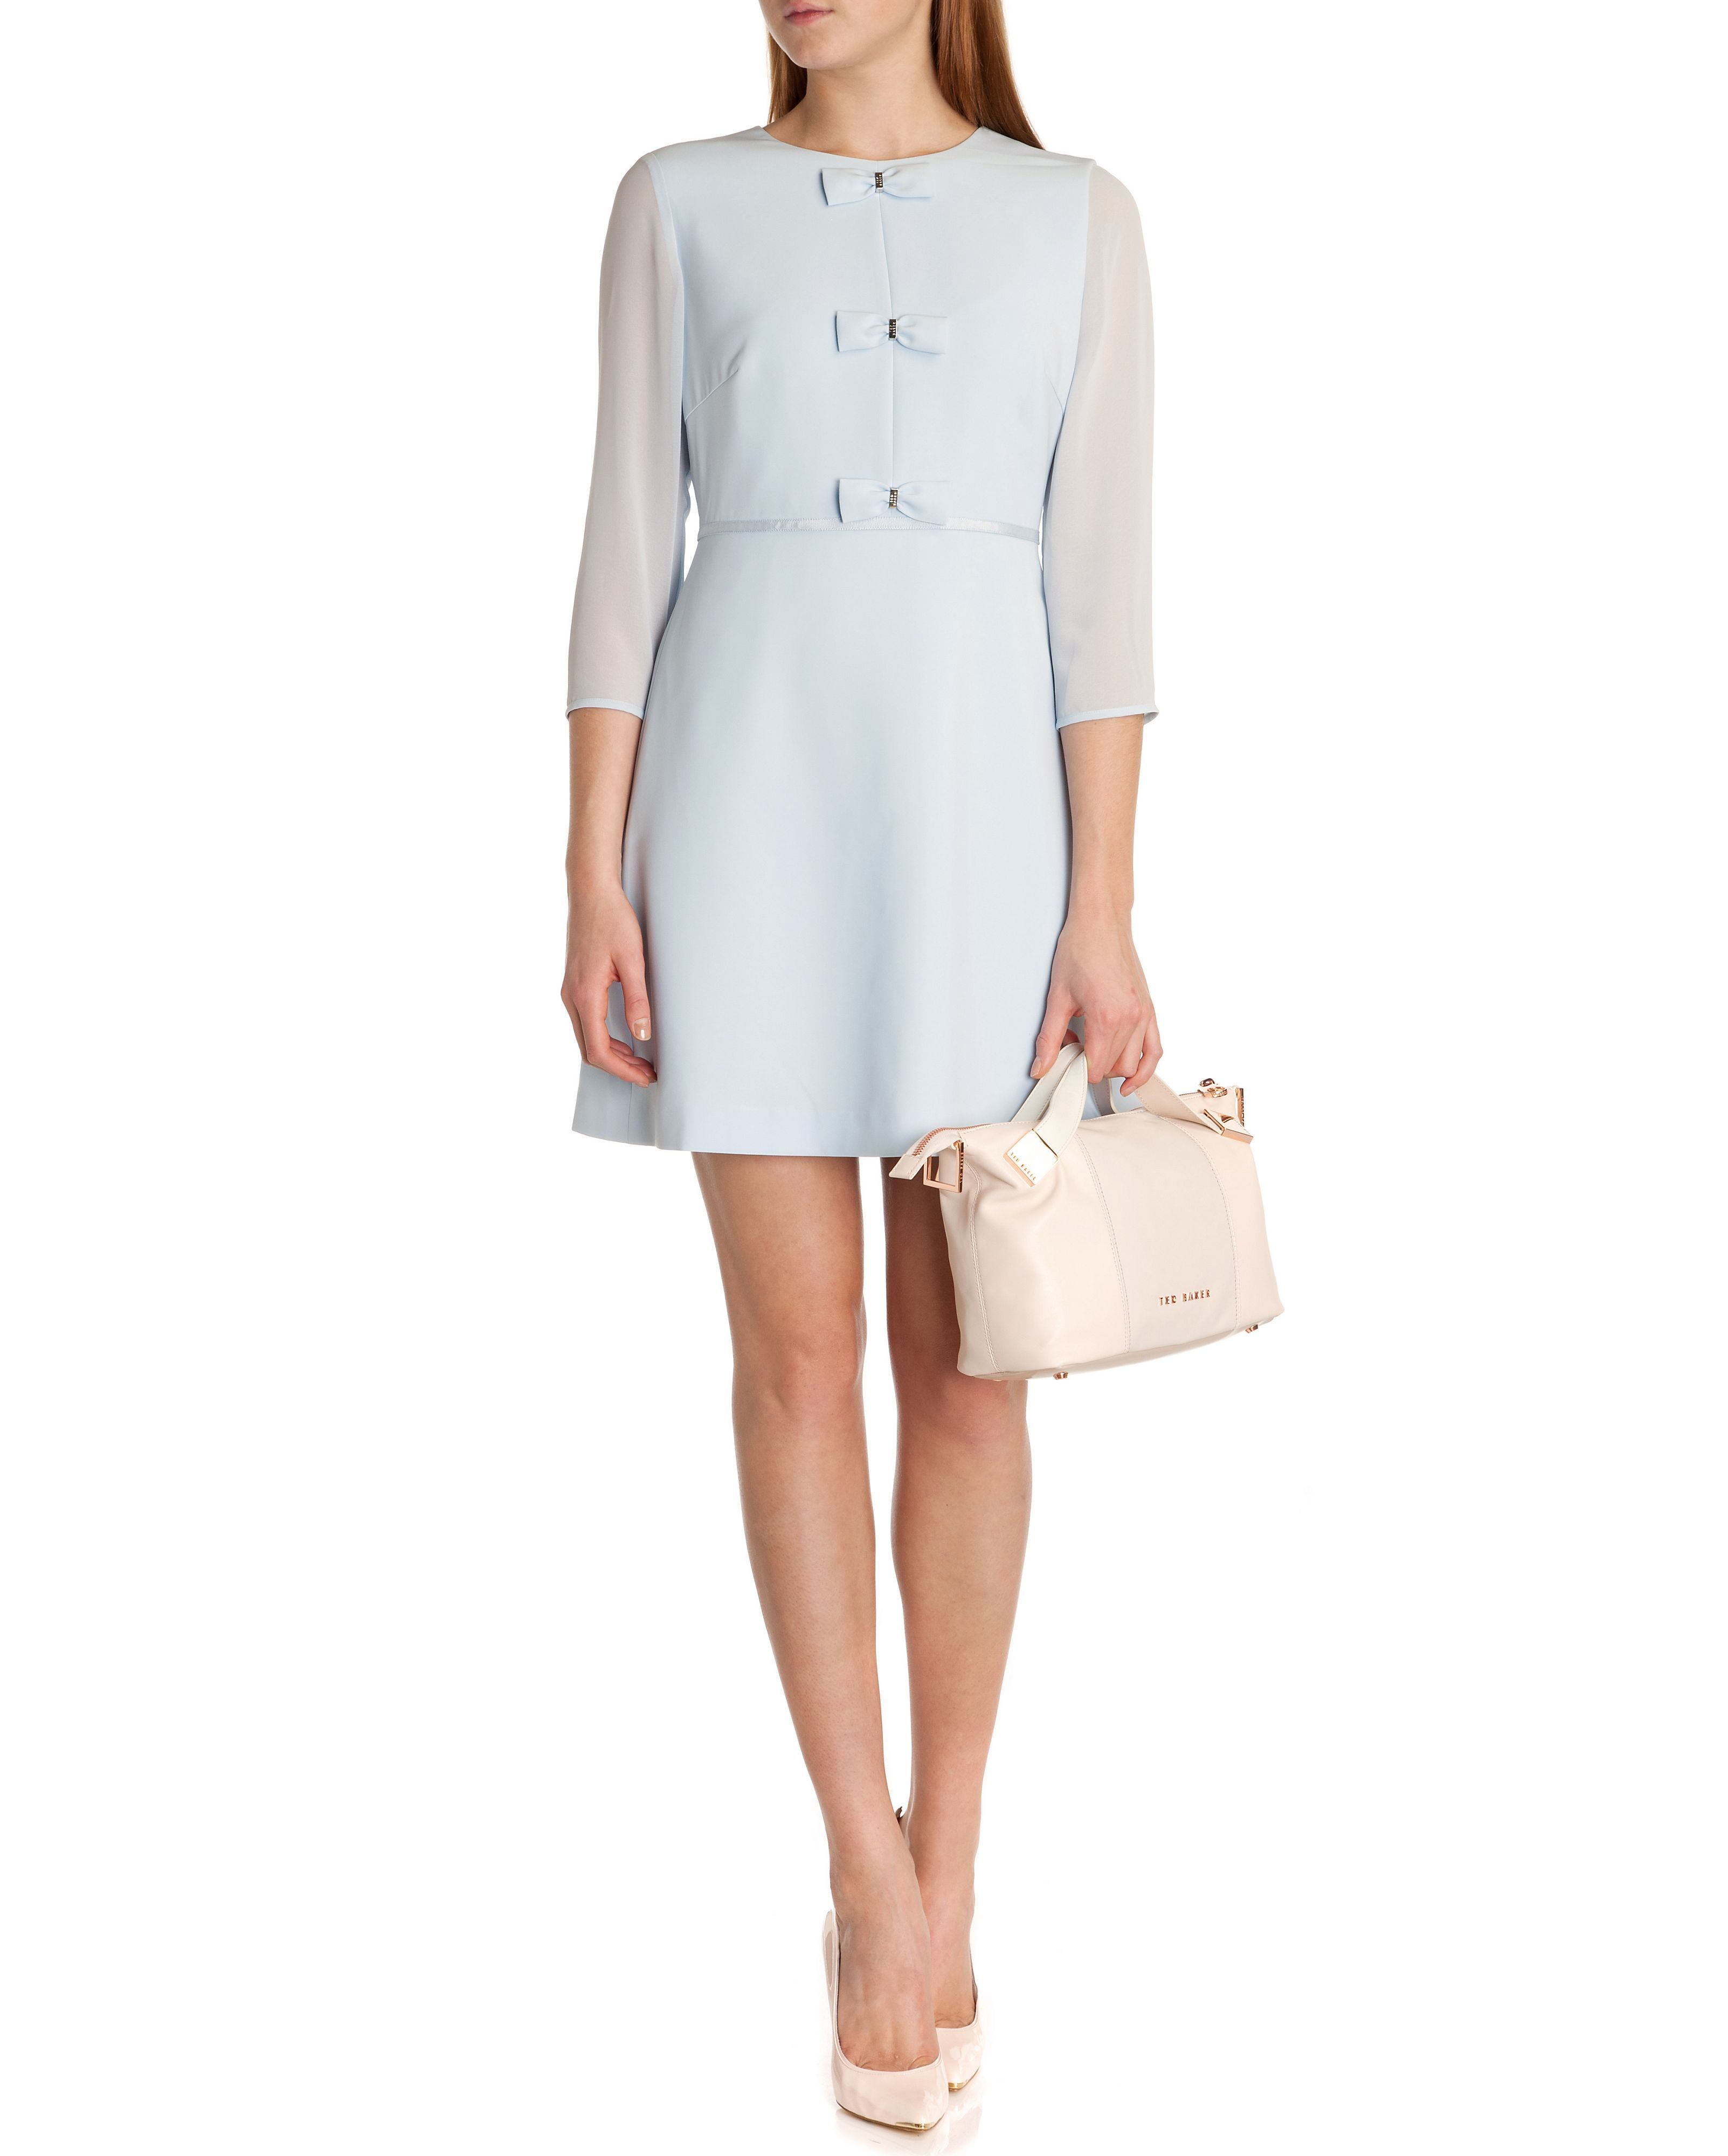 3aa5355f55b20a ted-baker-blue-finna-bow-detail Dress Powder Blue Girlish bows focus the  jewel-neck bodice of this stretch-woven dress eased by airy three-quarter  sleeves ...